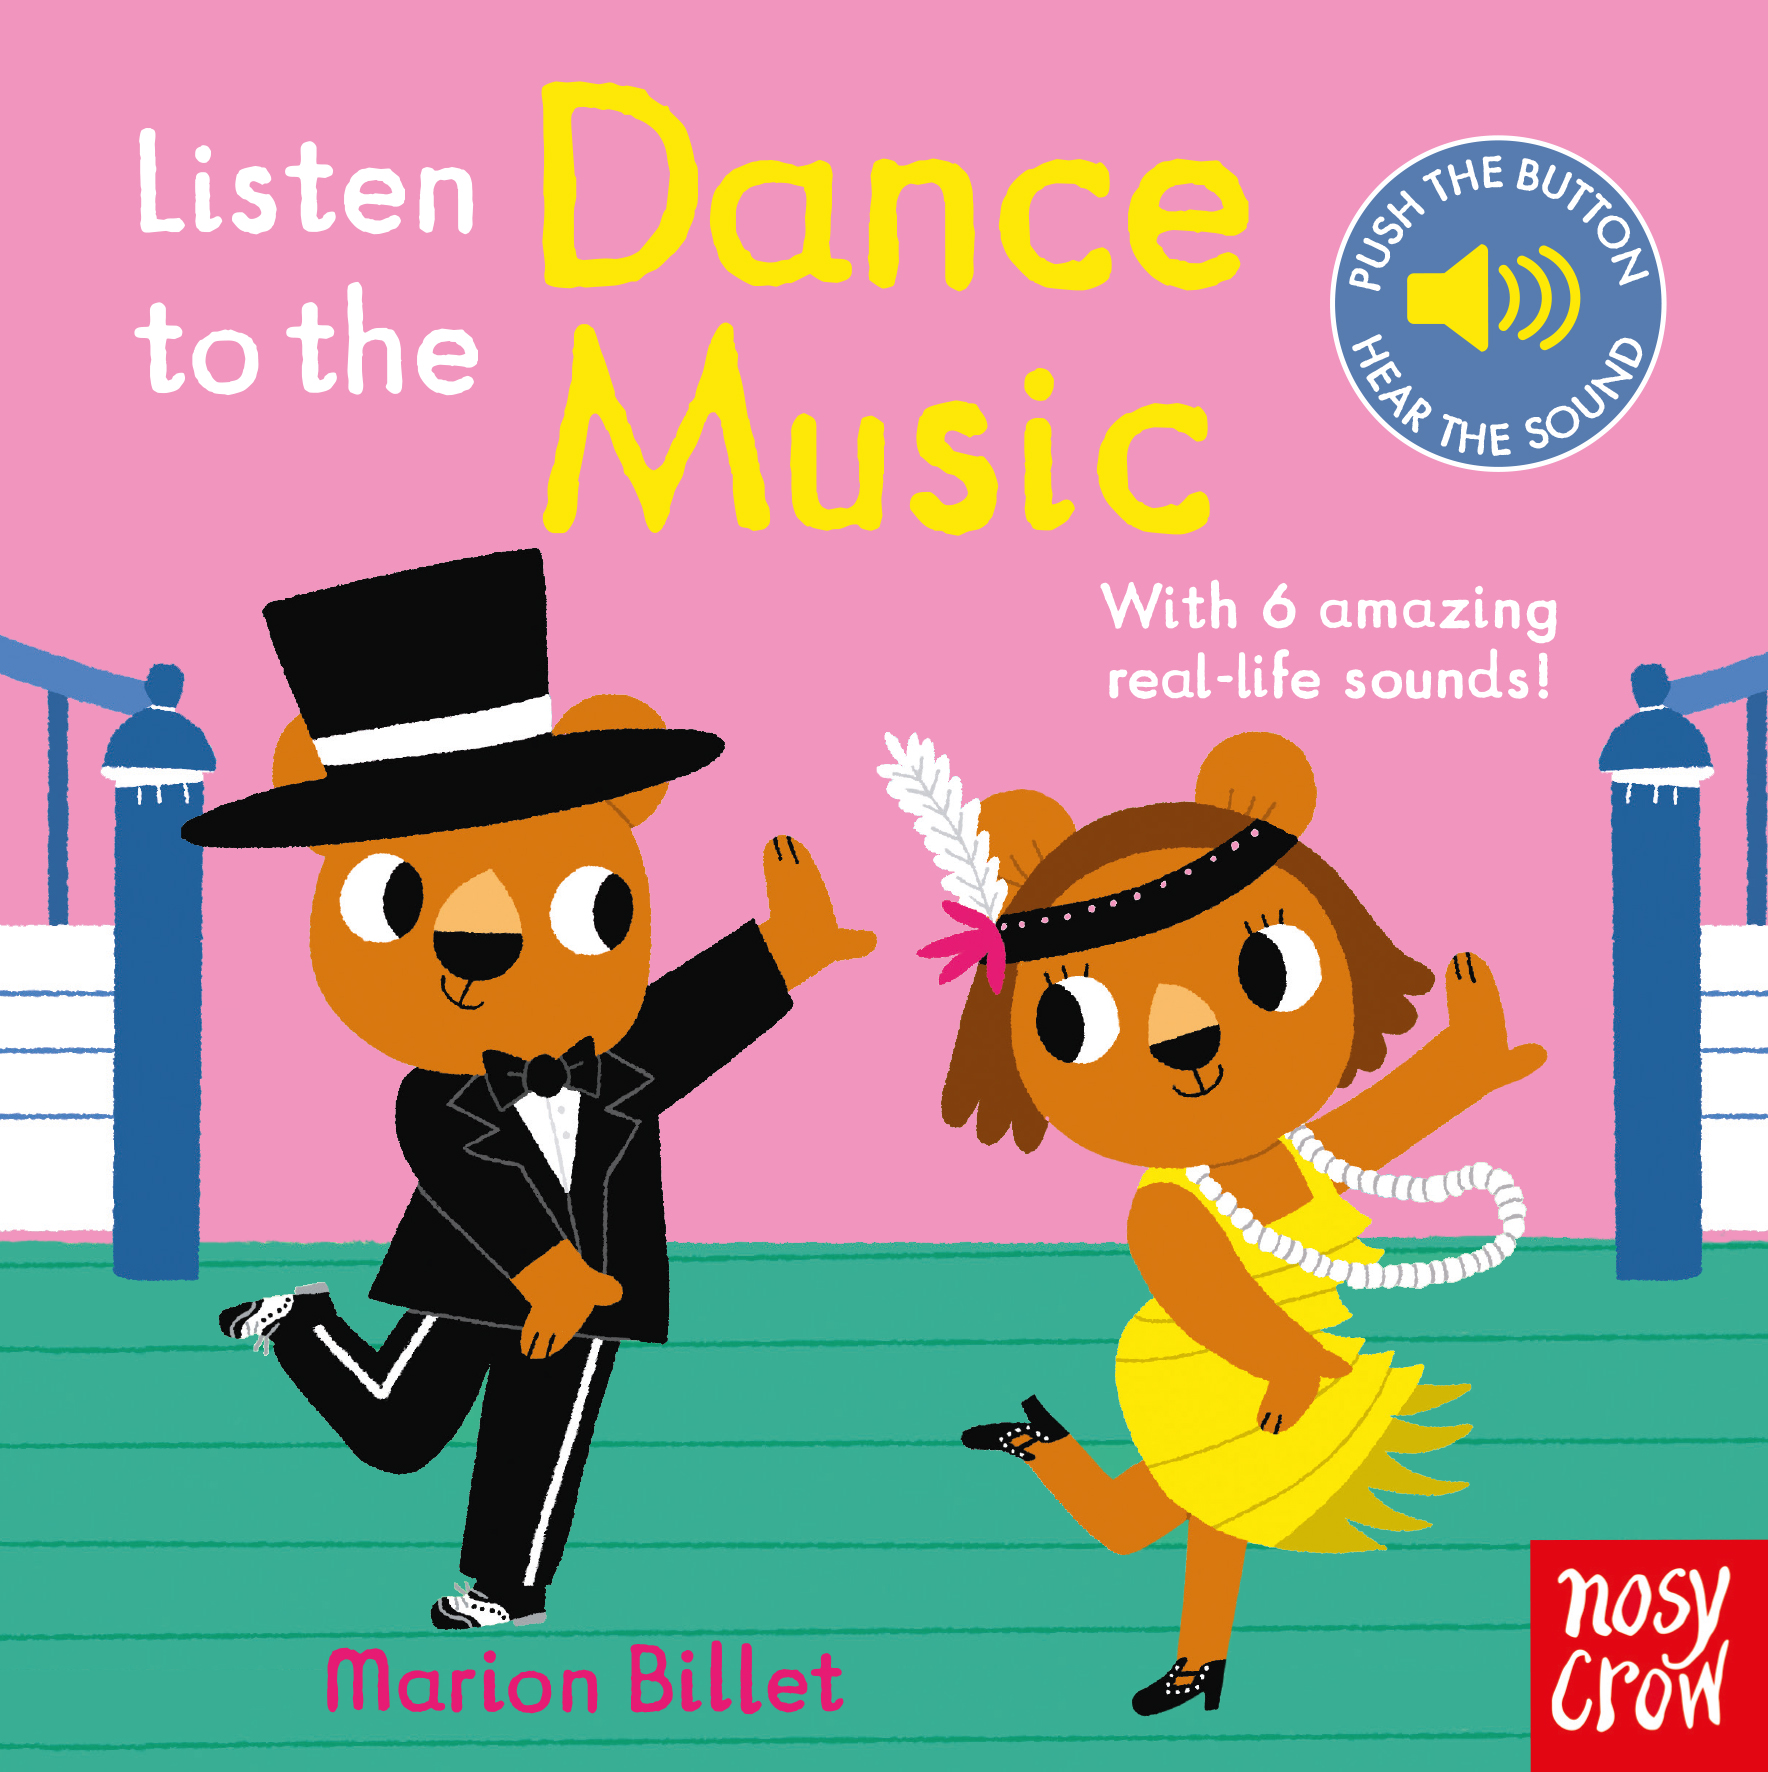 Listen to the Dance Music - Nosy Crow